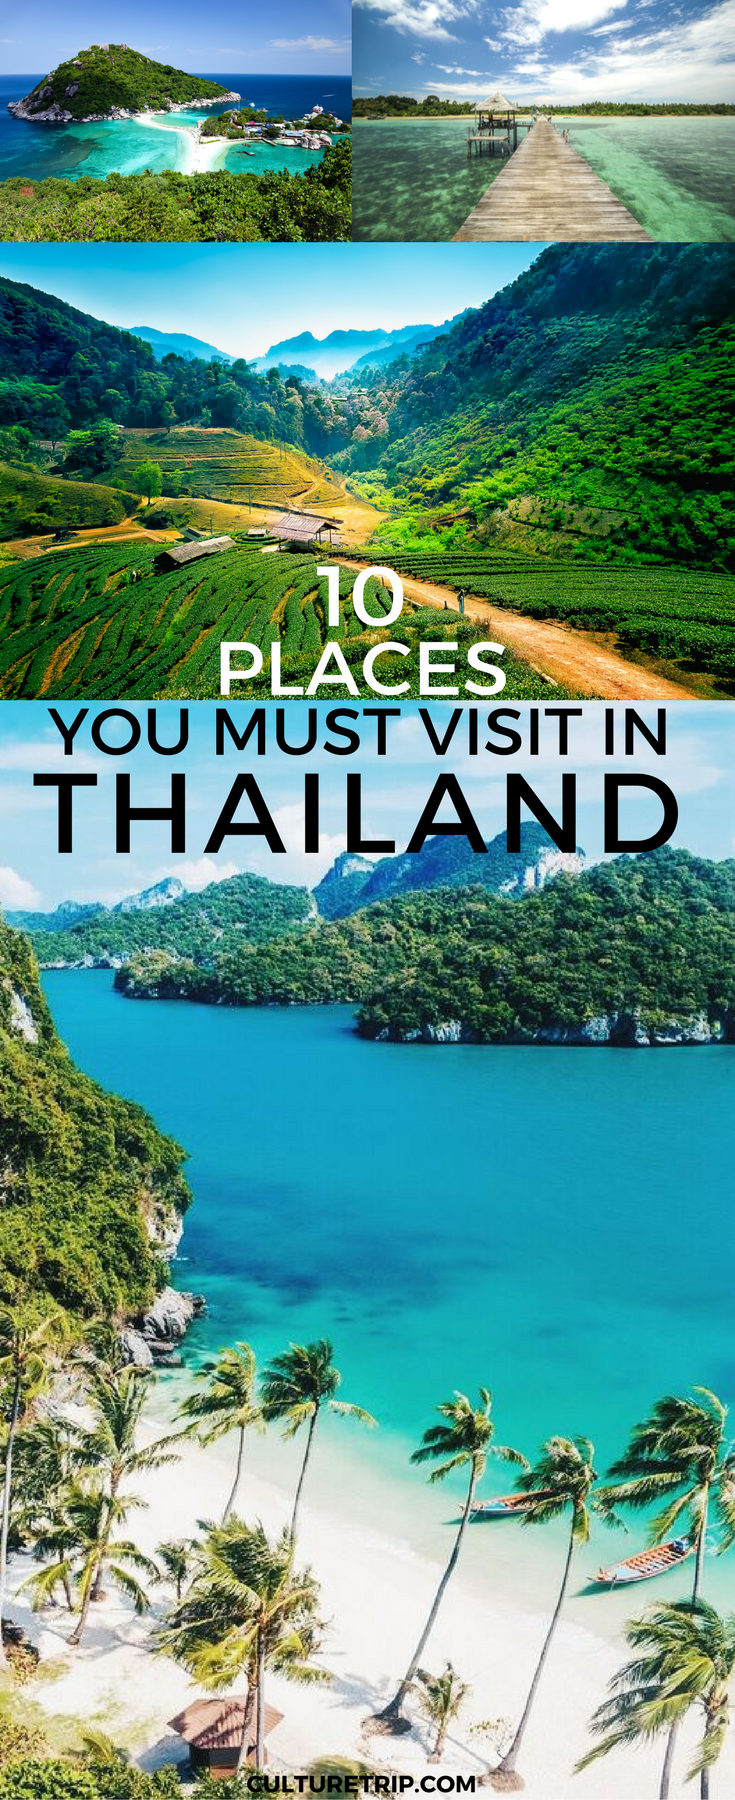 Places You Must Visit In Thailand Backpacks Wanderlust And - 8 amazing family destinations in thailand